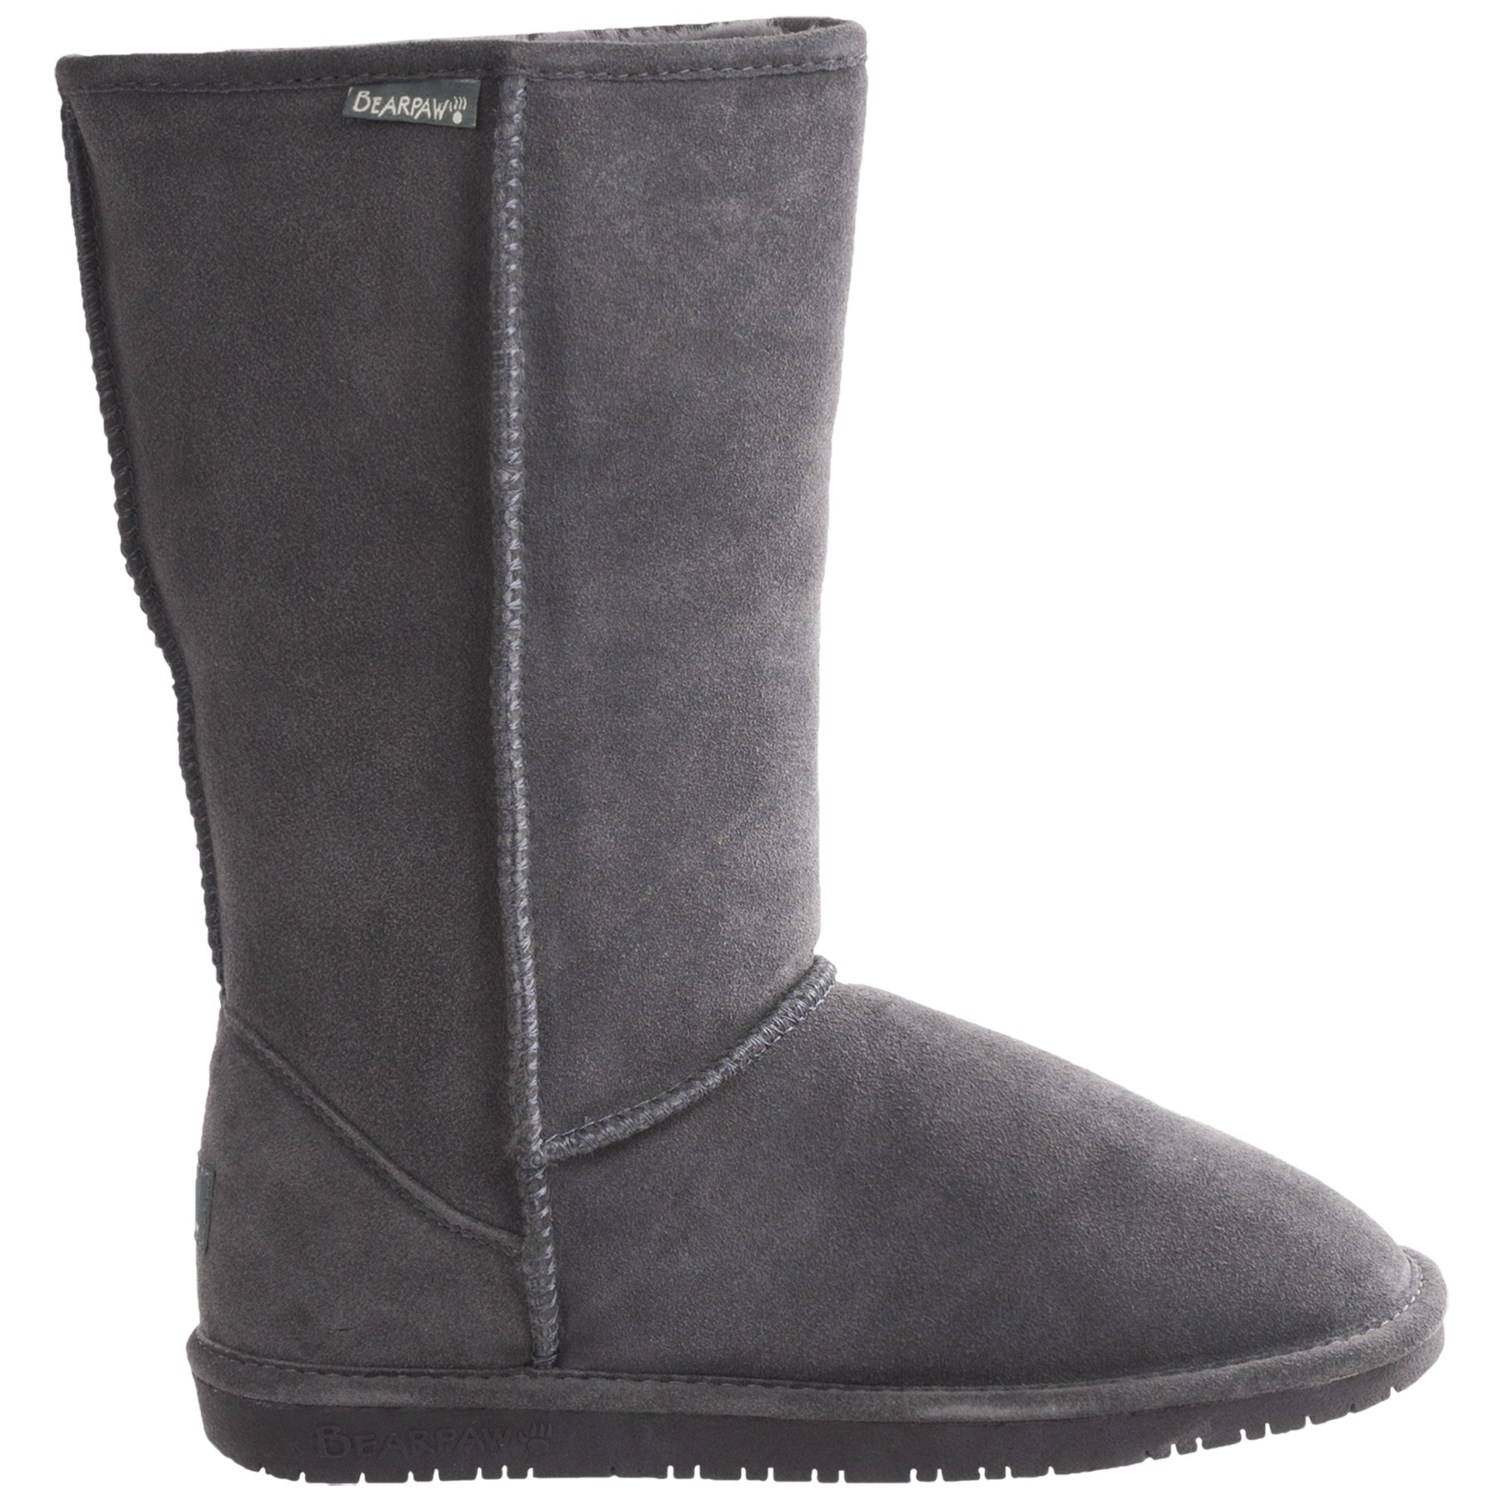 Bearpaw Emma Tall Boots For Women Save 55